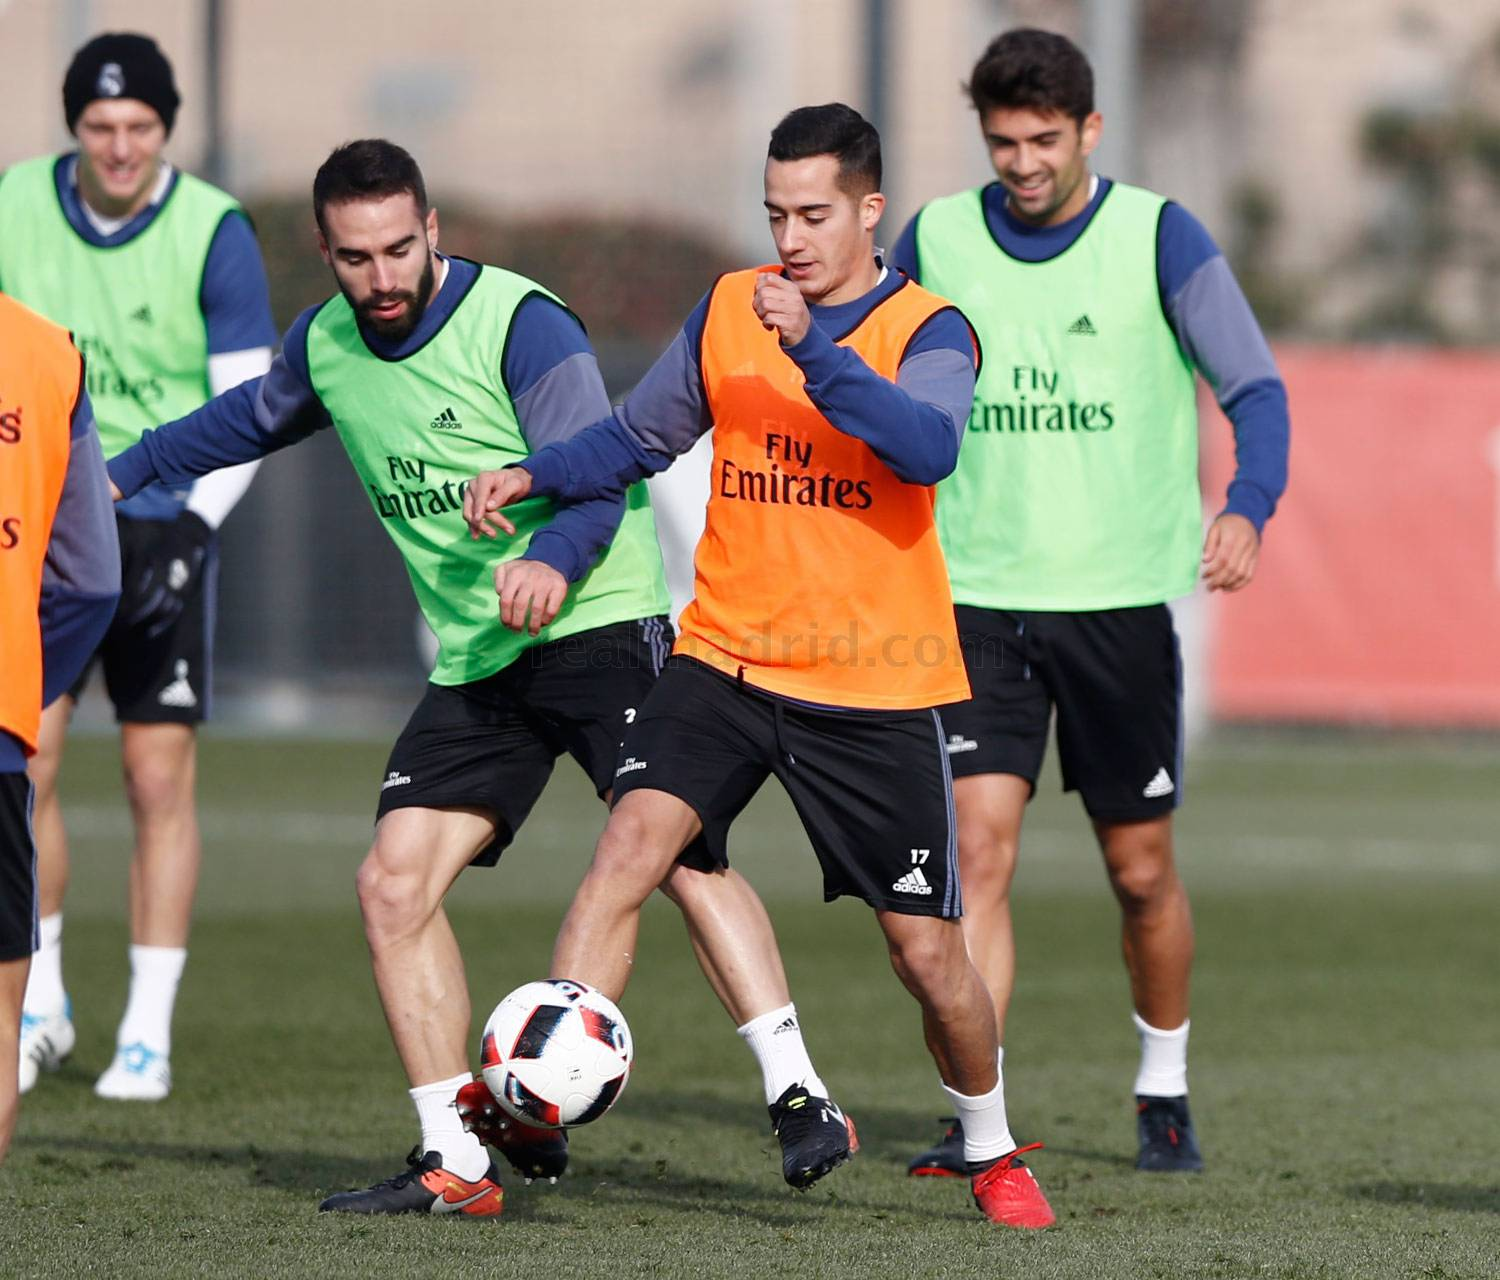 Real Madrid - Entrenamiento del Real Madrid - 10-01-2017